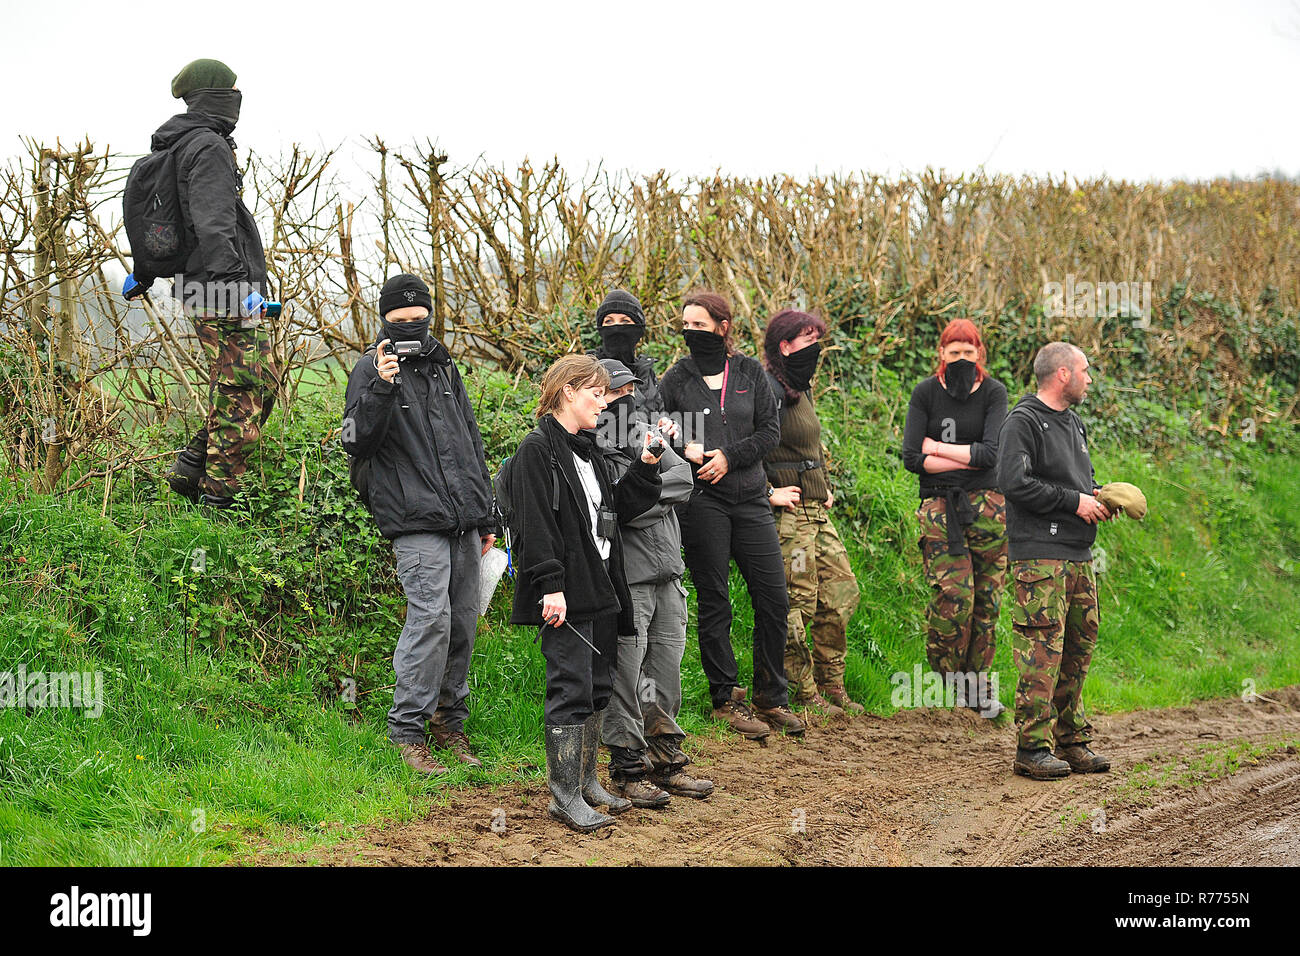 hunt saboteurs videoing and protesting against a hunt - Stock Image